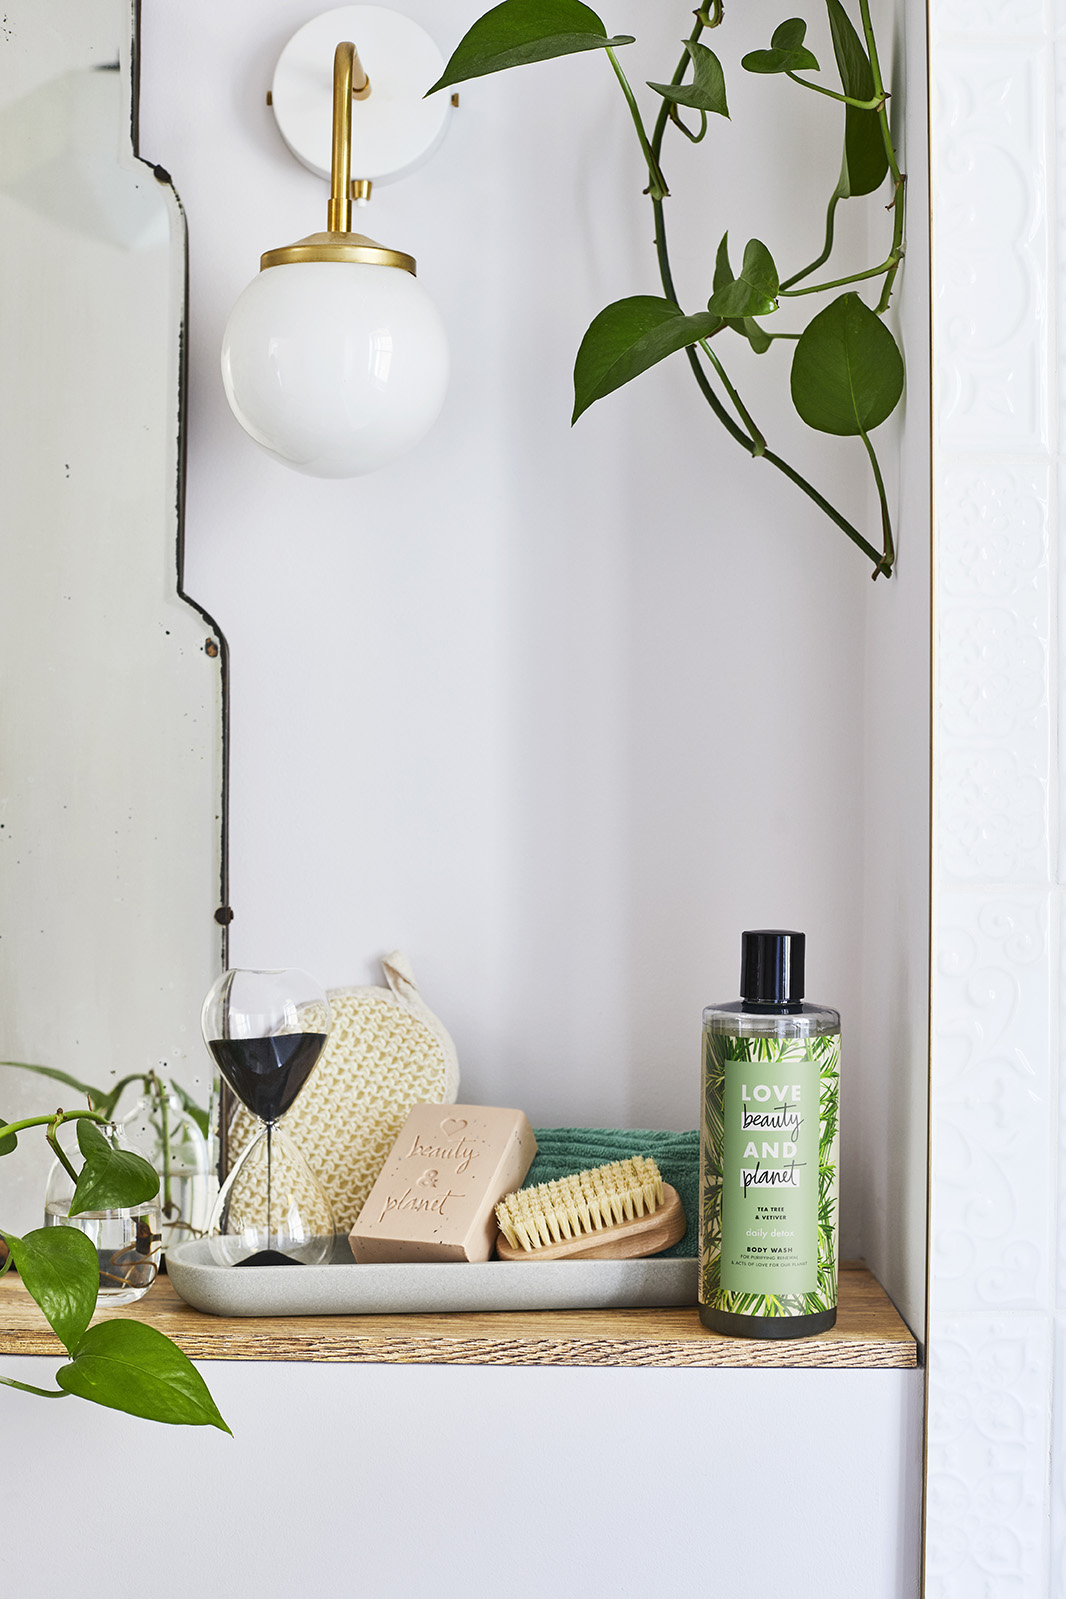 Natural beauty bathroom styling